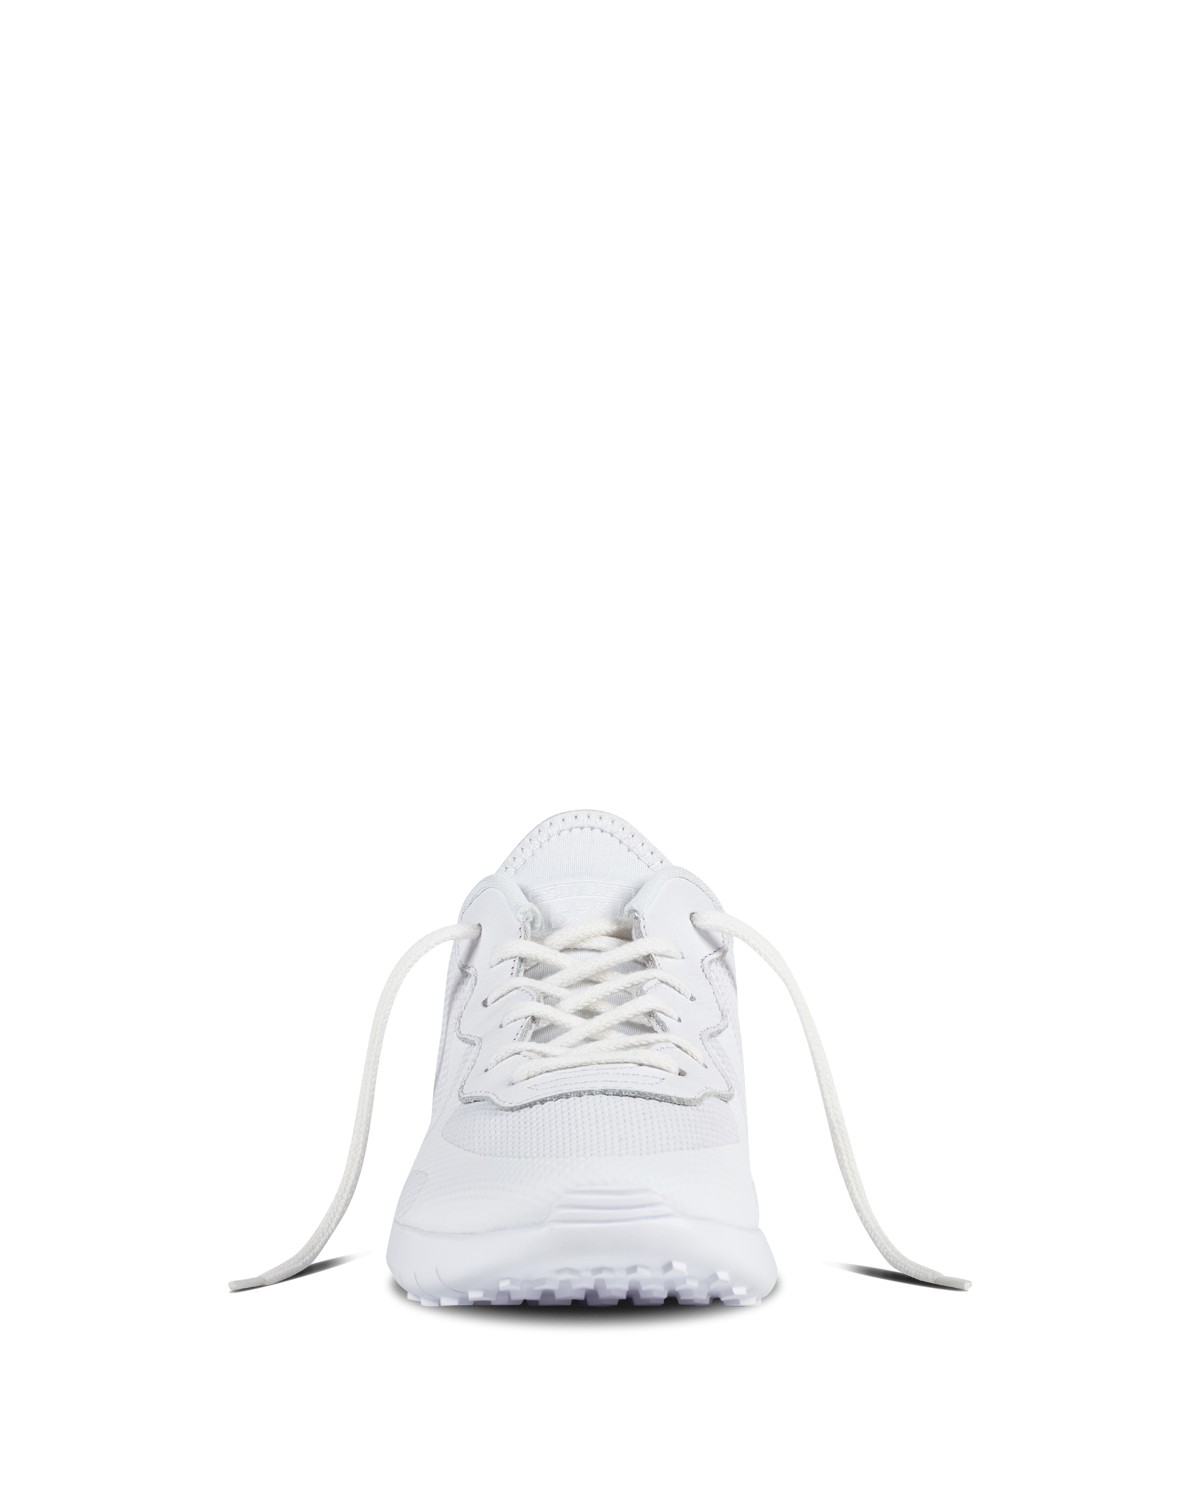 455ae5a19db8 Converse Thunderbolt Ultra Woven Low Top are a white runner style sneaker  with converse styling.